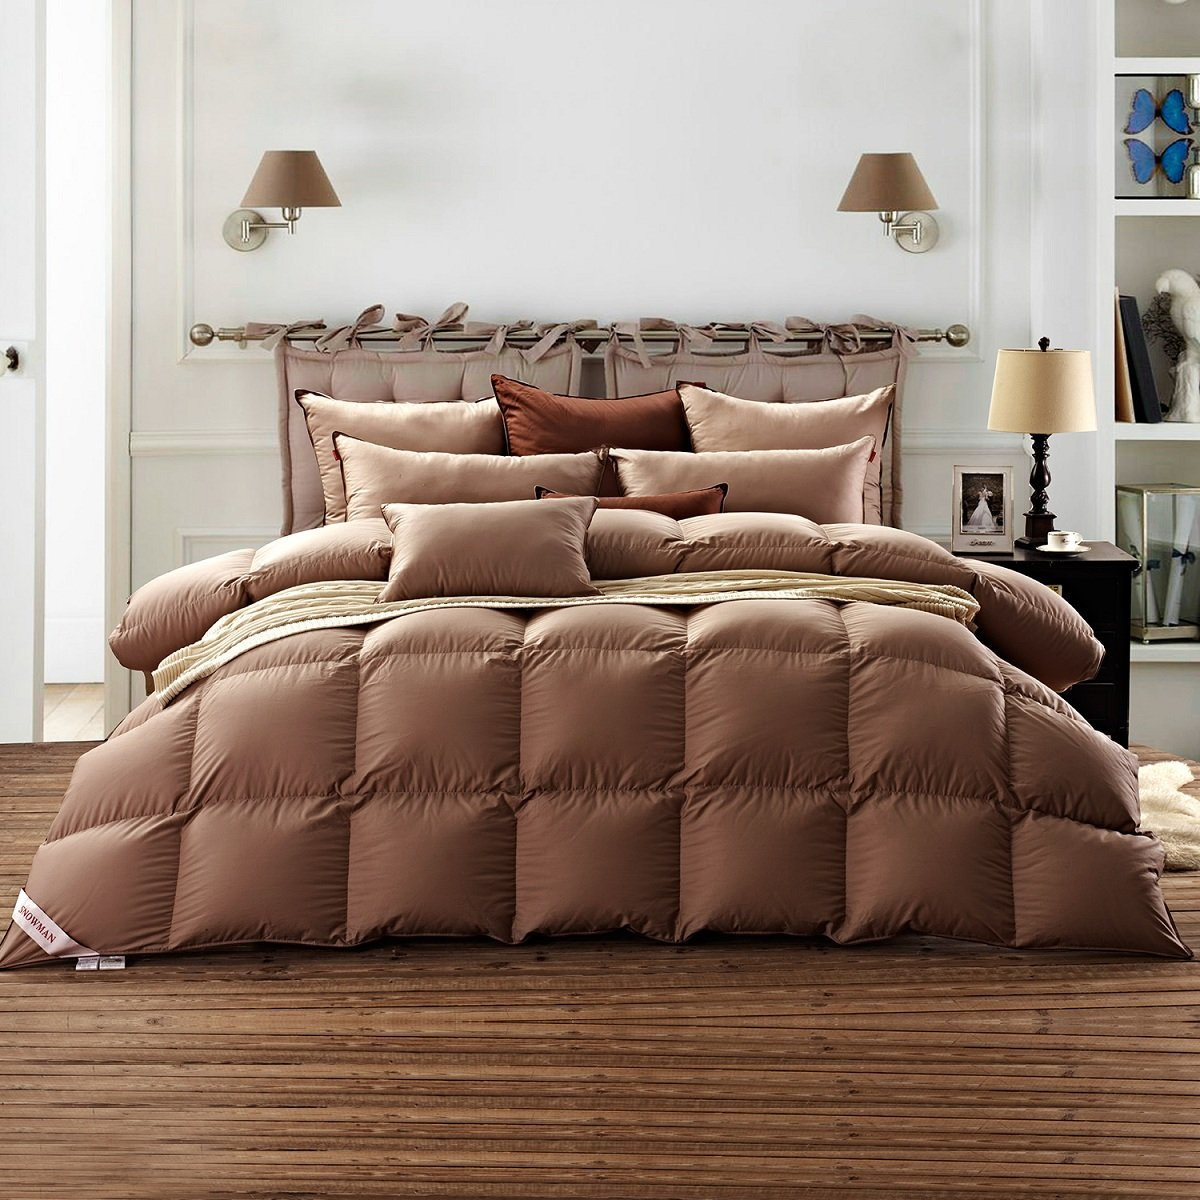 SNOWMAN Luxurious Goose Down Comforter Queen Size 100% Cotton Shell with Corner Tab-Extra Warm,Khaki